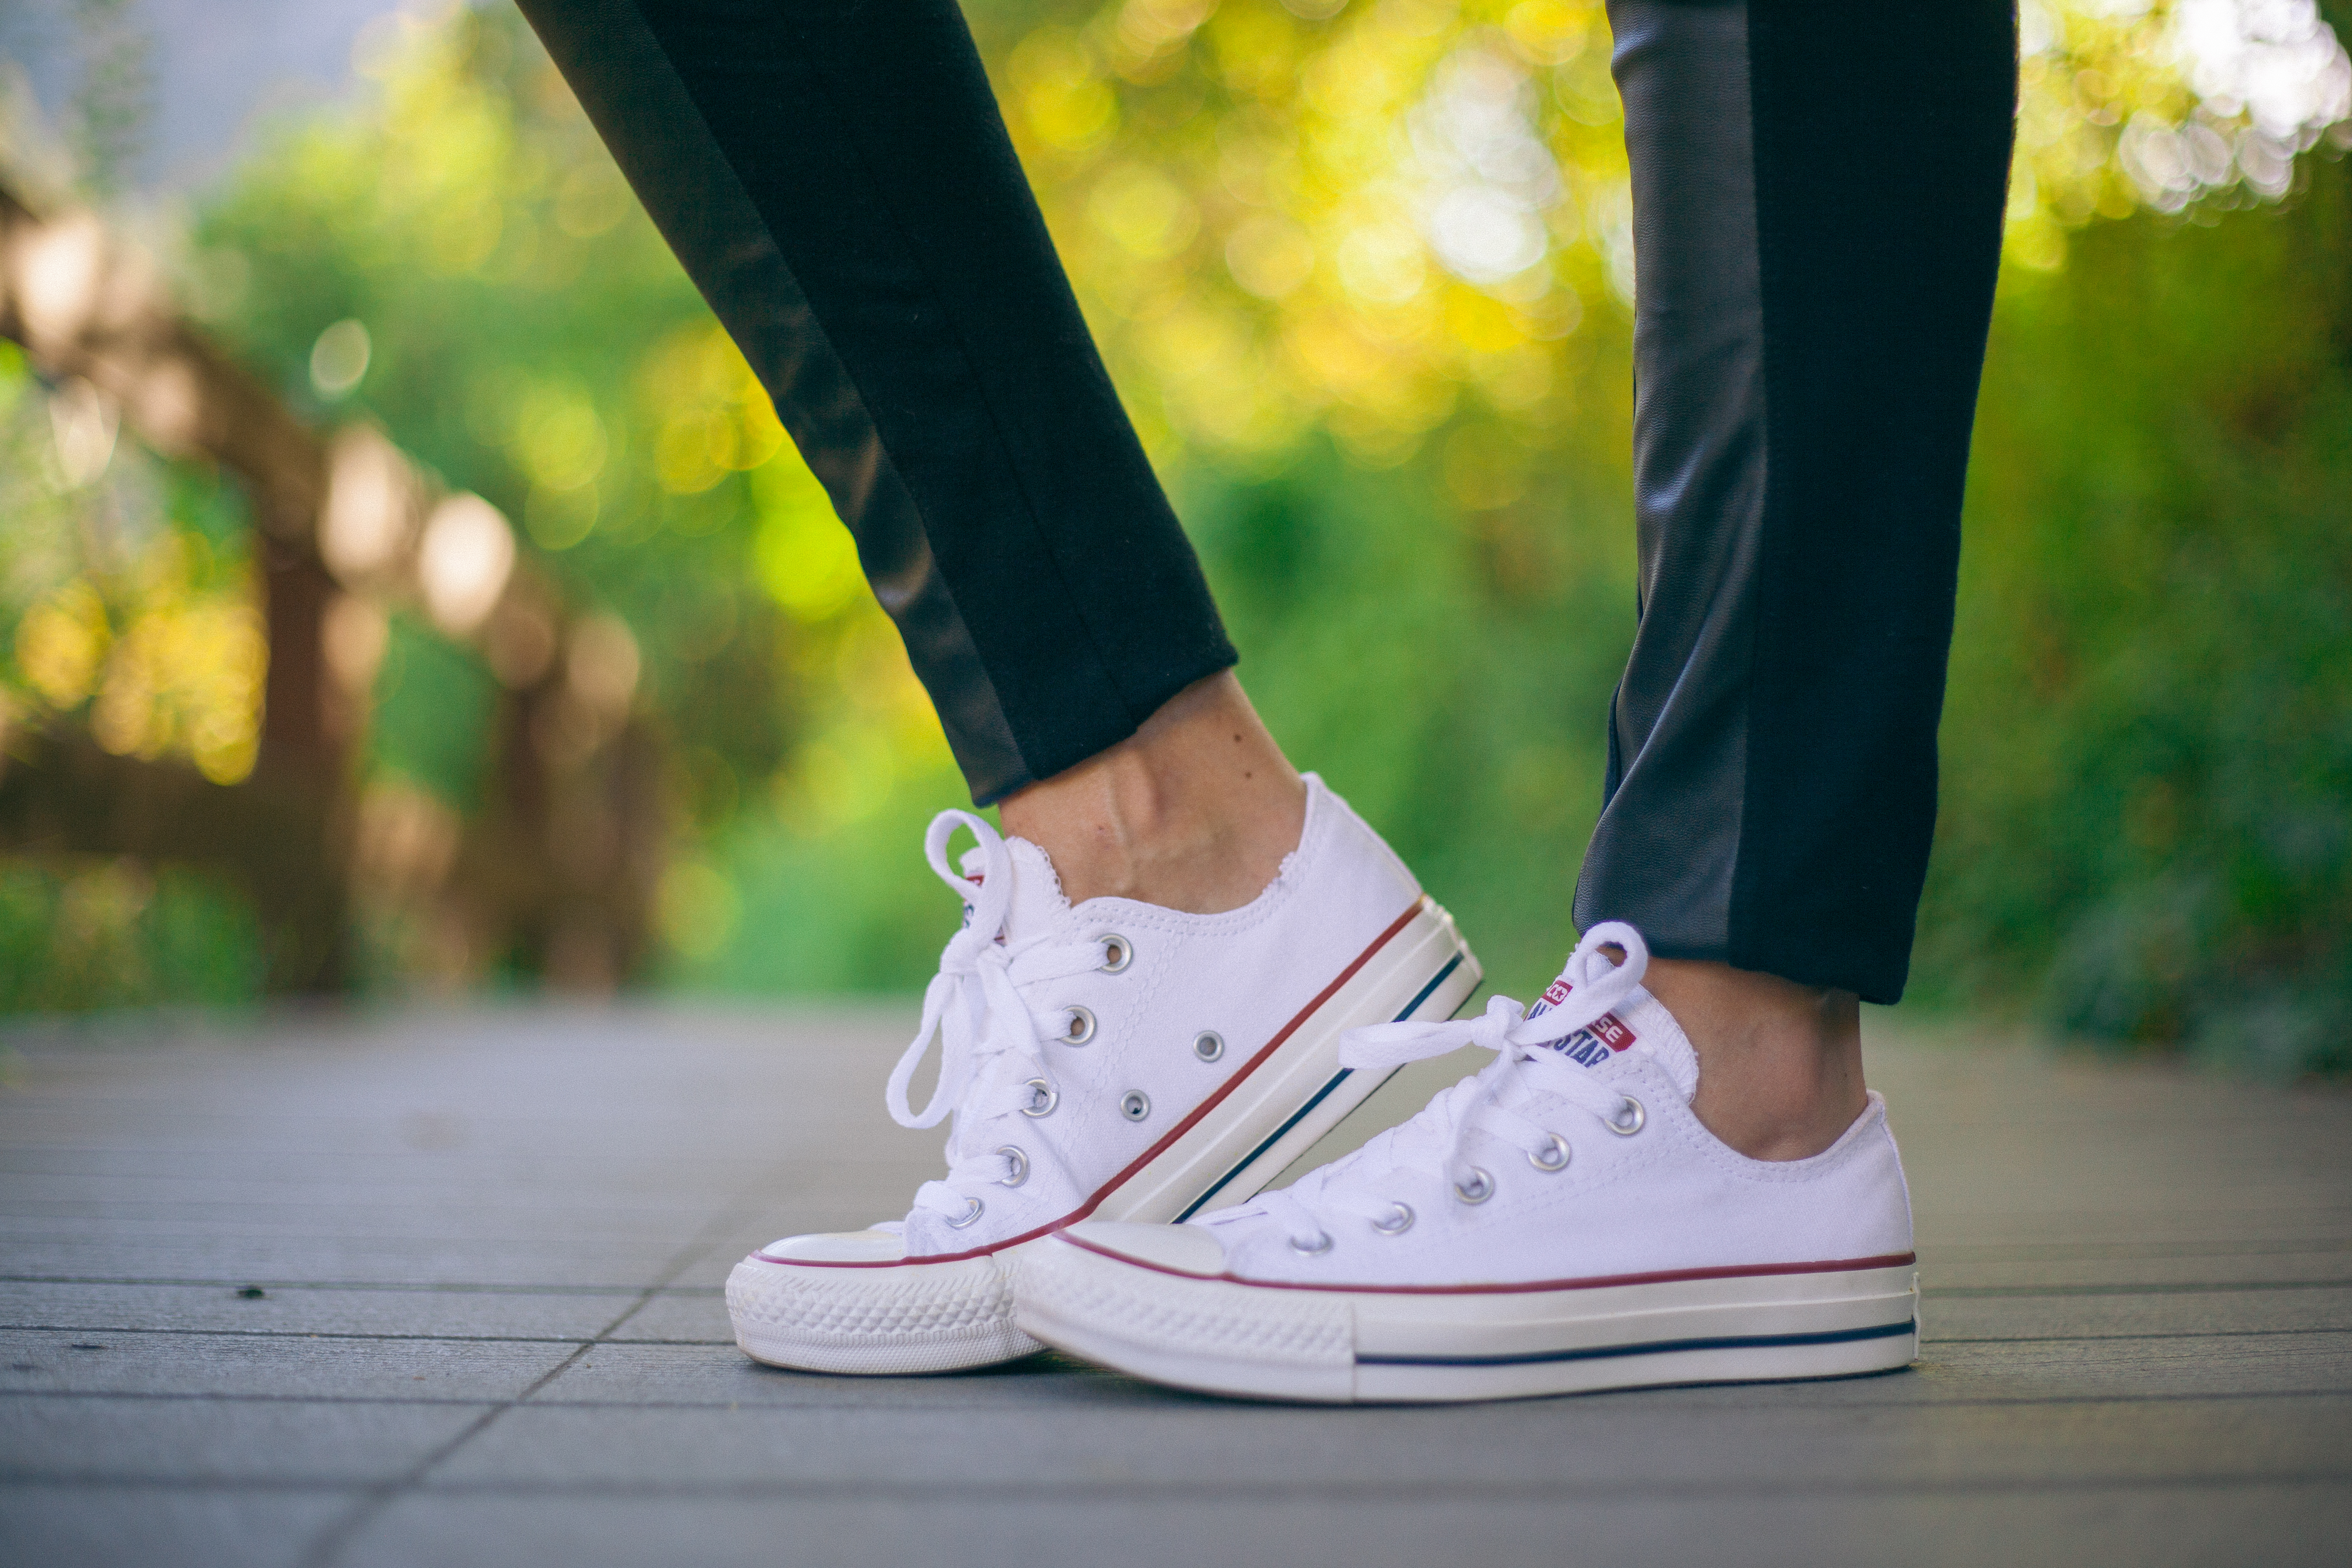 Holy Chic Tee and White Converse All Star Sneakers | Modest Style